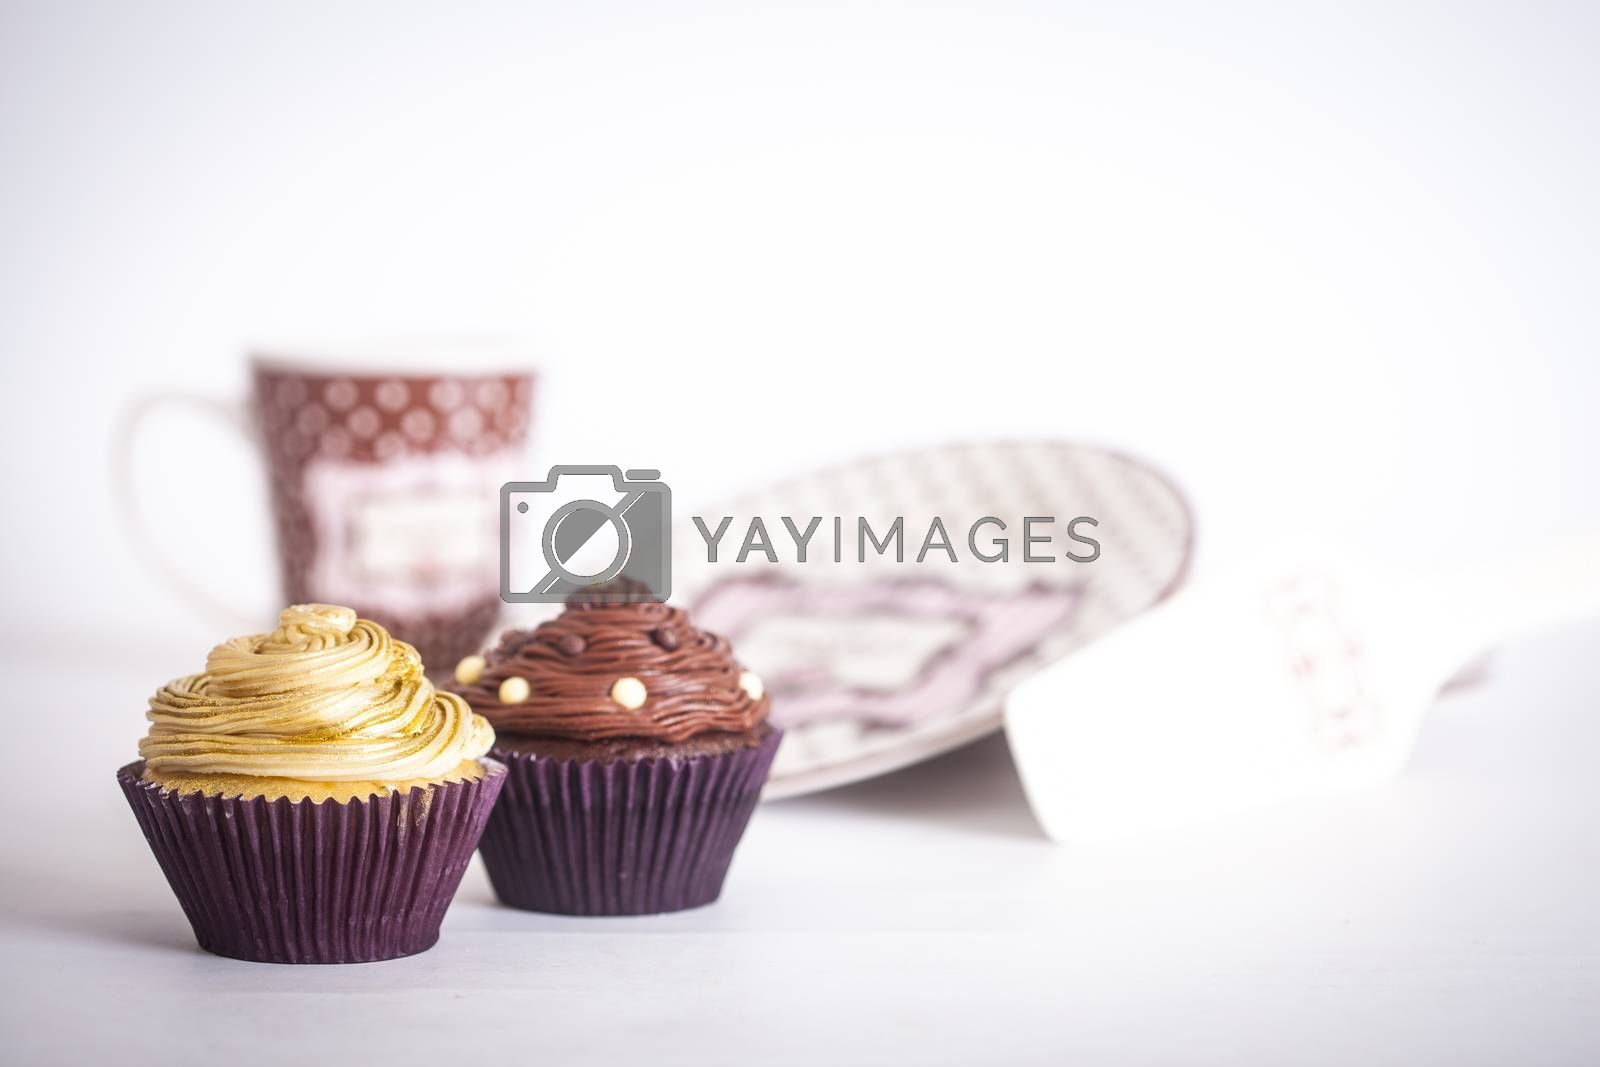 Cupcakes in front of plates and a mug, on a white background.